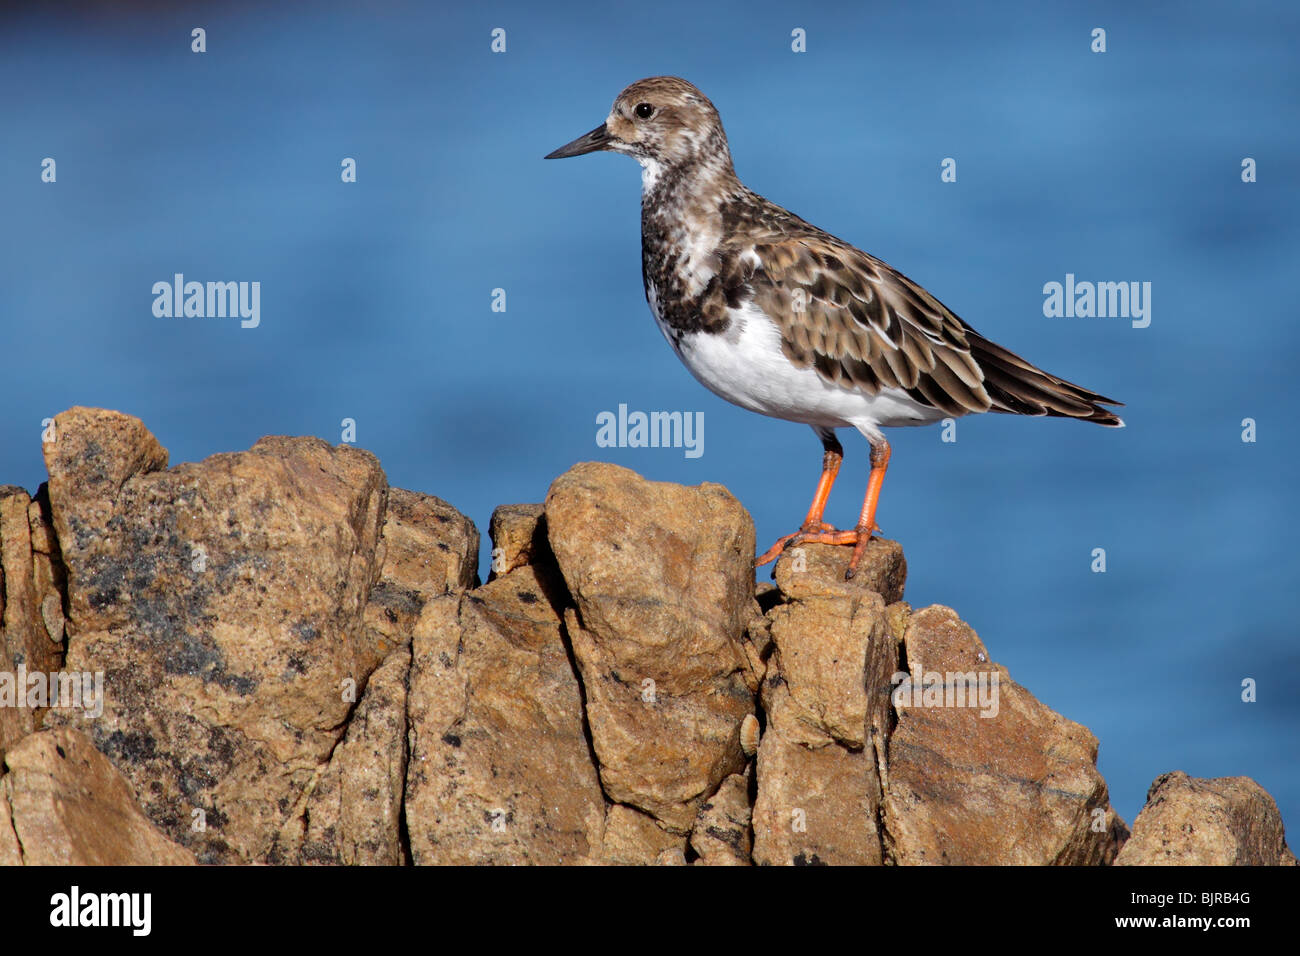 A Turnstone (Arenaria interpres) perched on a rock, South Africa - Stock Image